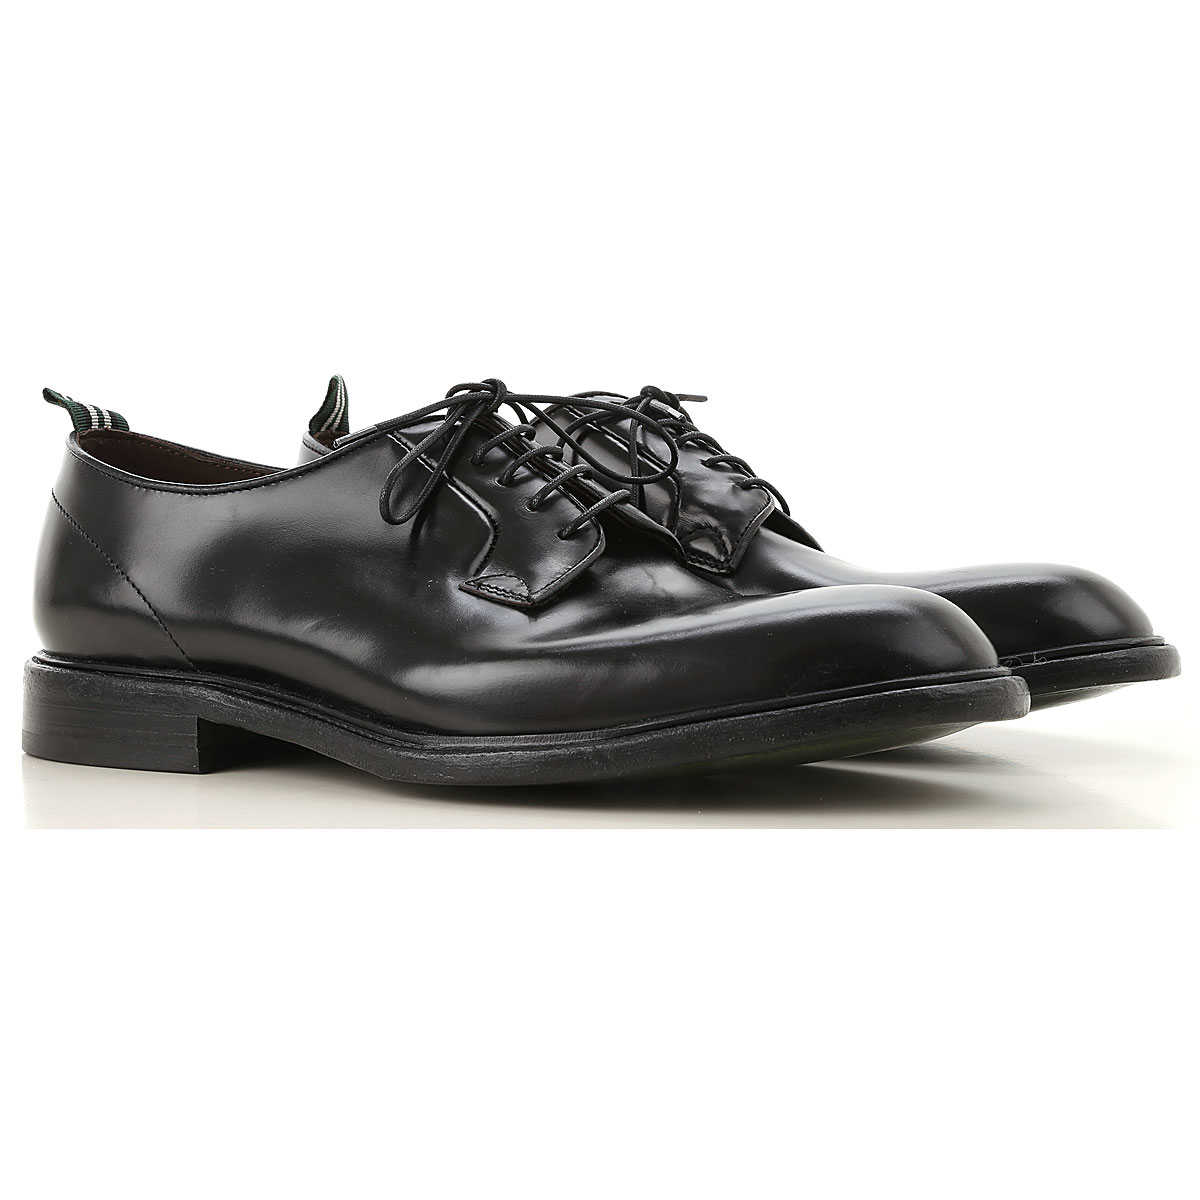 Green George Lace Up Shoes for Men Oxfords